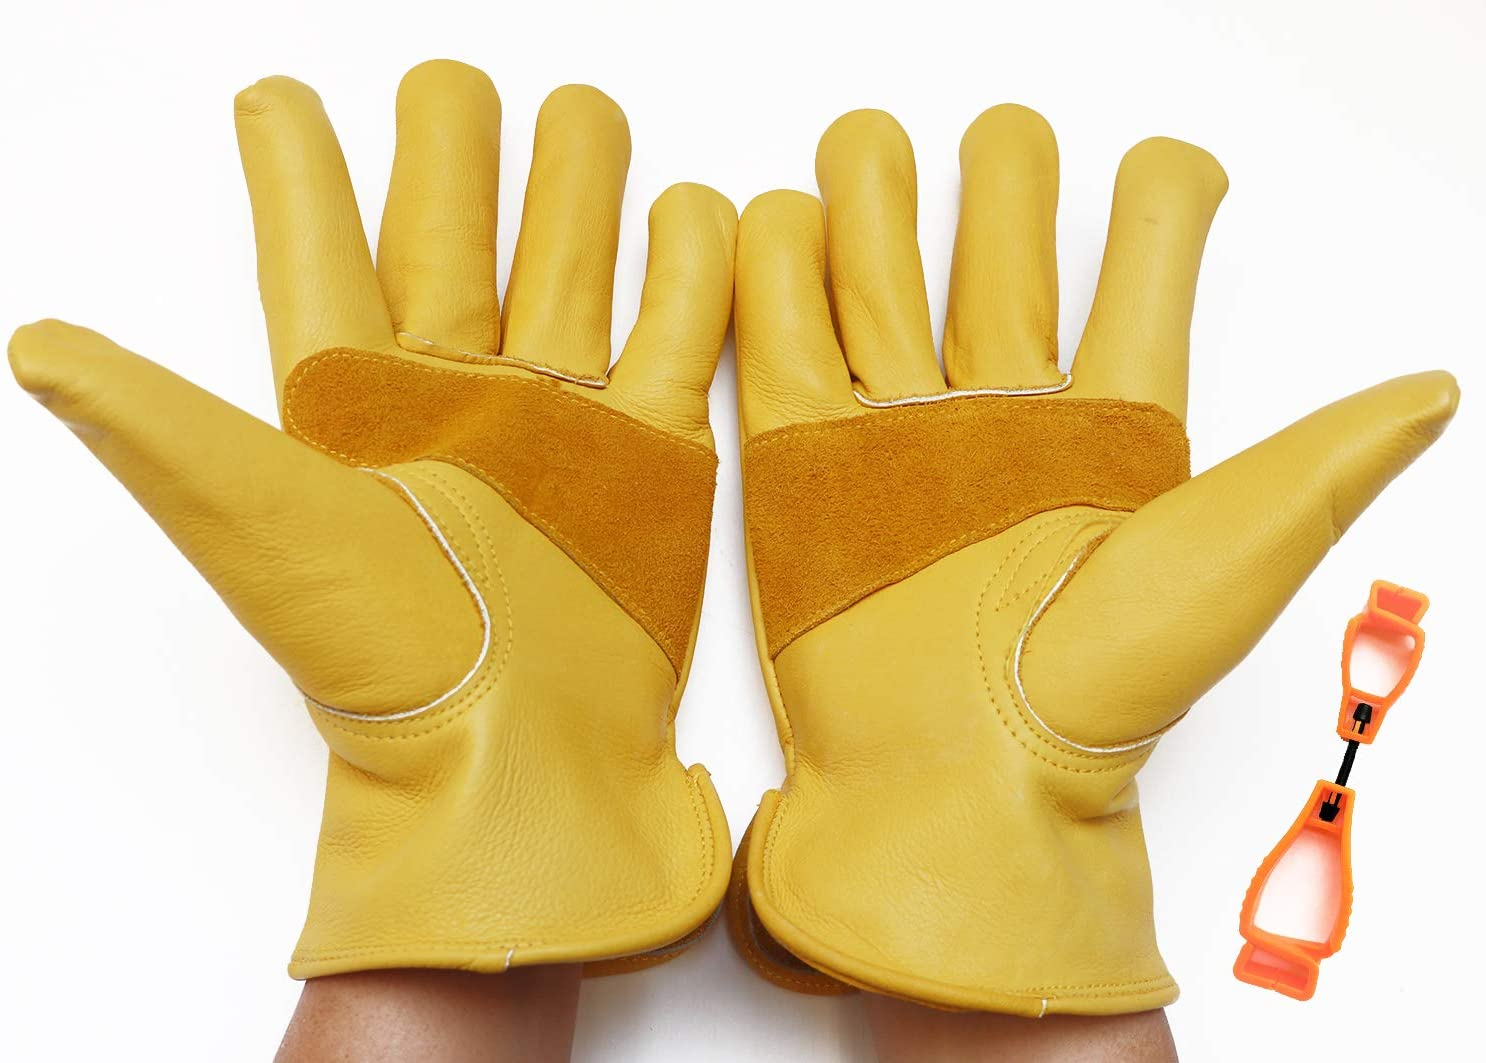 VidaLoda Heavy Duty Leather Work Gloves for Gardening/Farming/Construction/Motorcycle/Industral Use, Cowhide Working Glove, Both for Men & Women, 1 Pair 1 Glove Clip, (Gold, Large)